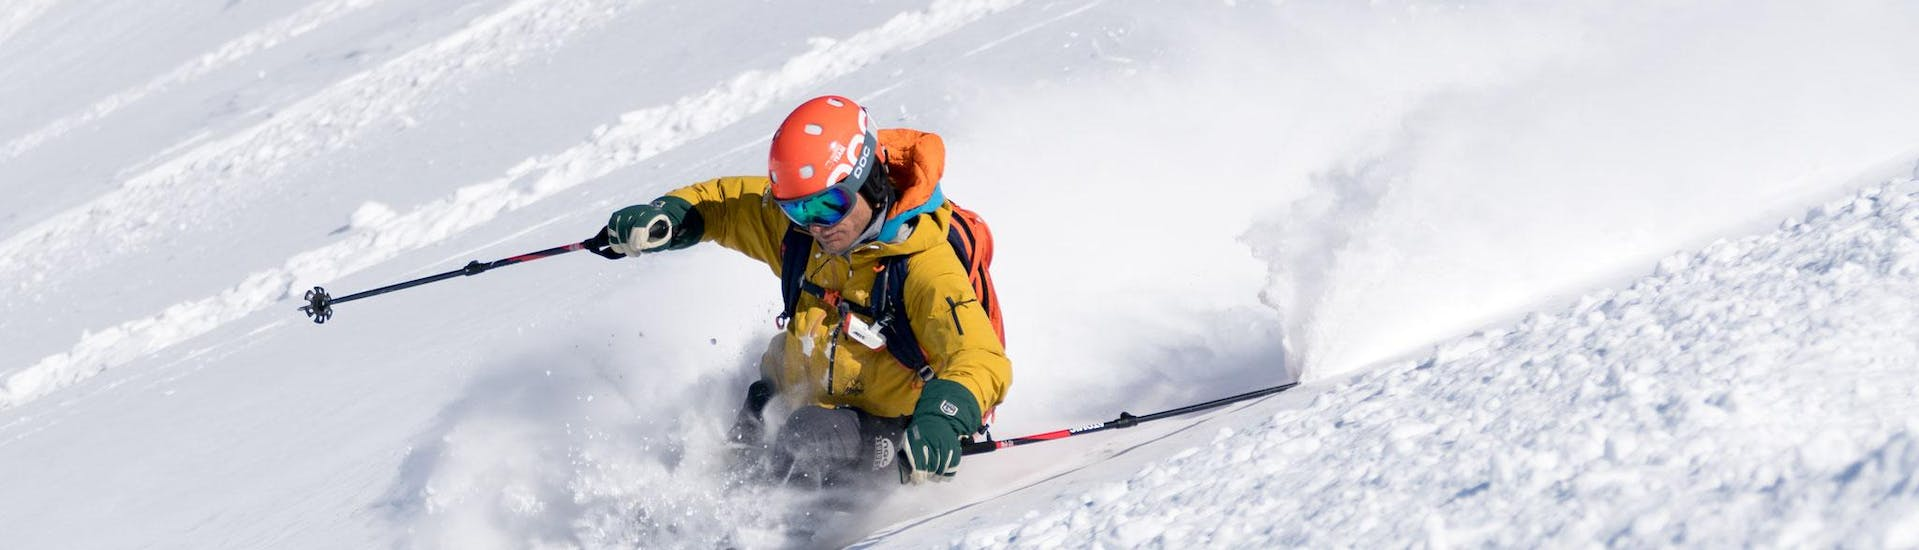 Private Off-Piste Skiing Tours for All Levels